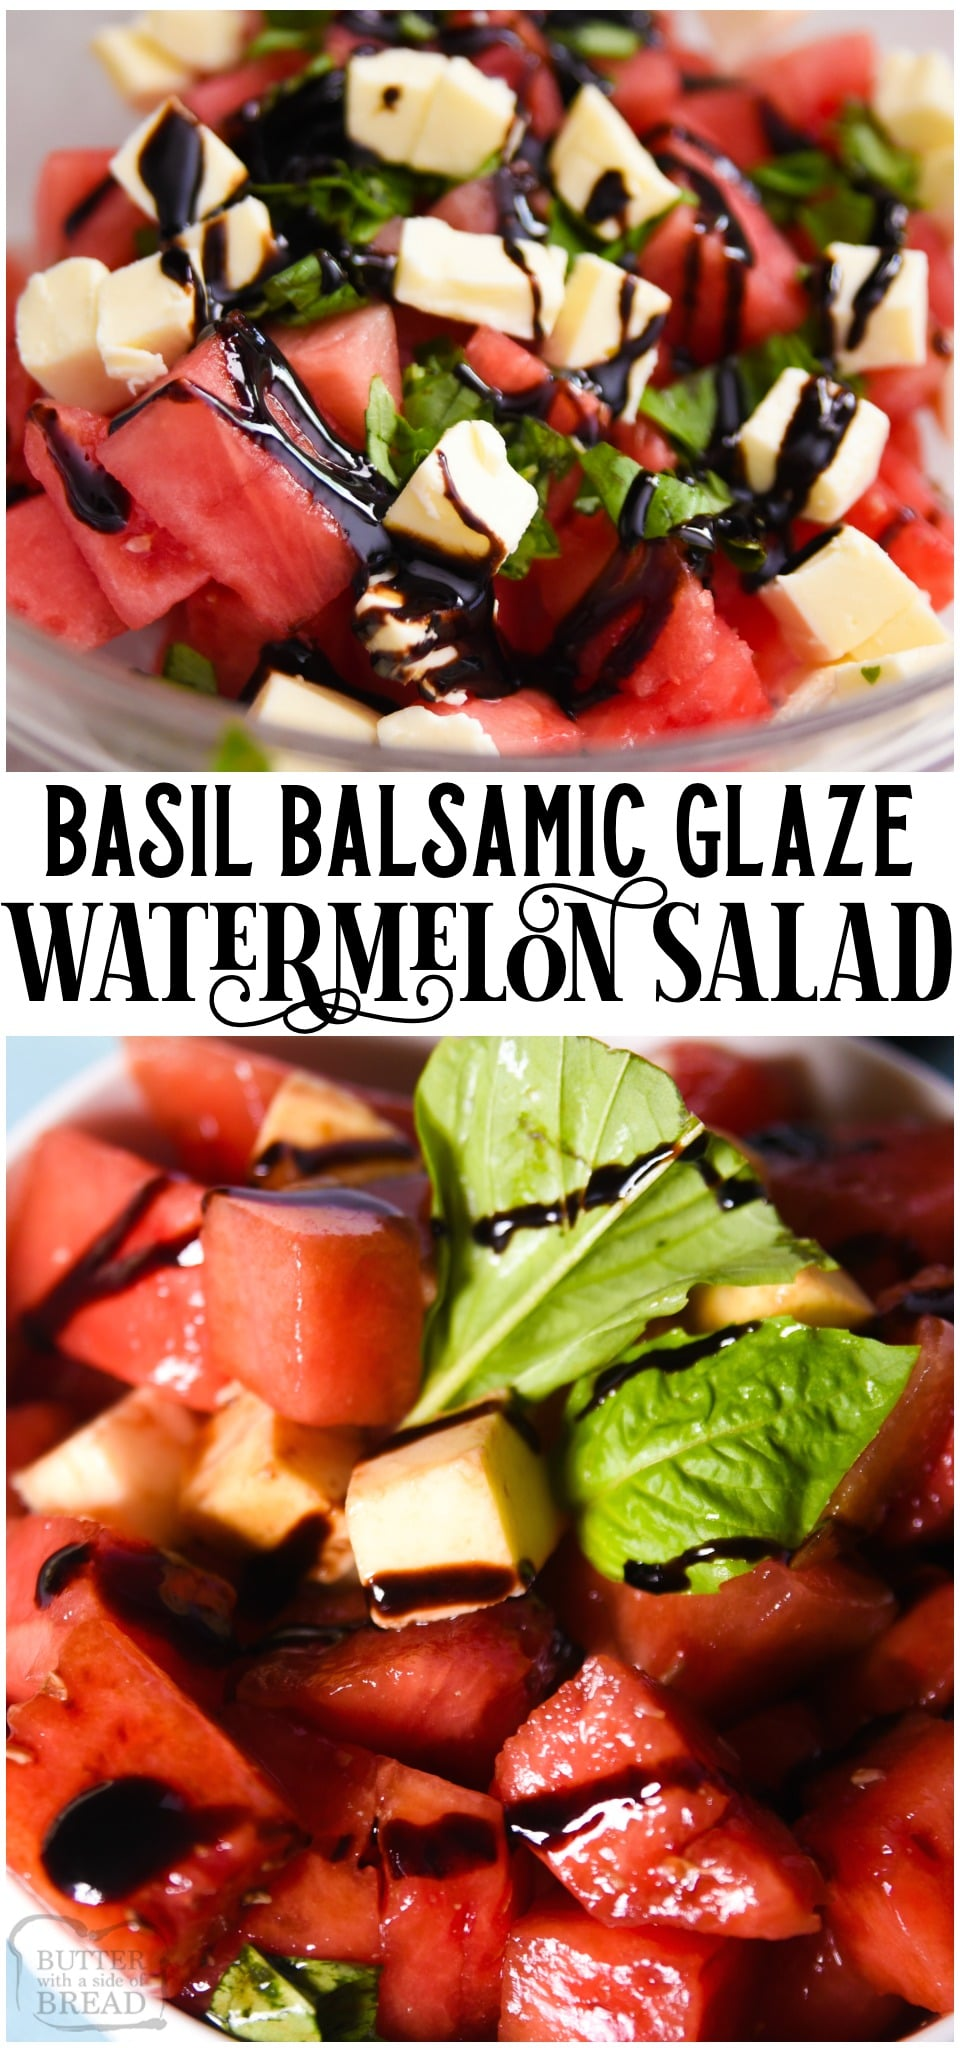 Watermelon Salad recipe with just 4 ingredients! Delightful mix of sweet and savory flavors in this watermelon salad with basil and balsamic vinegar!